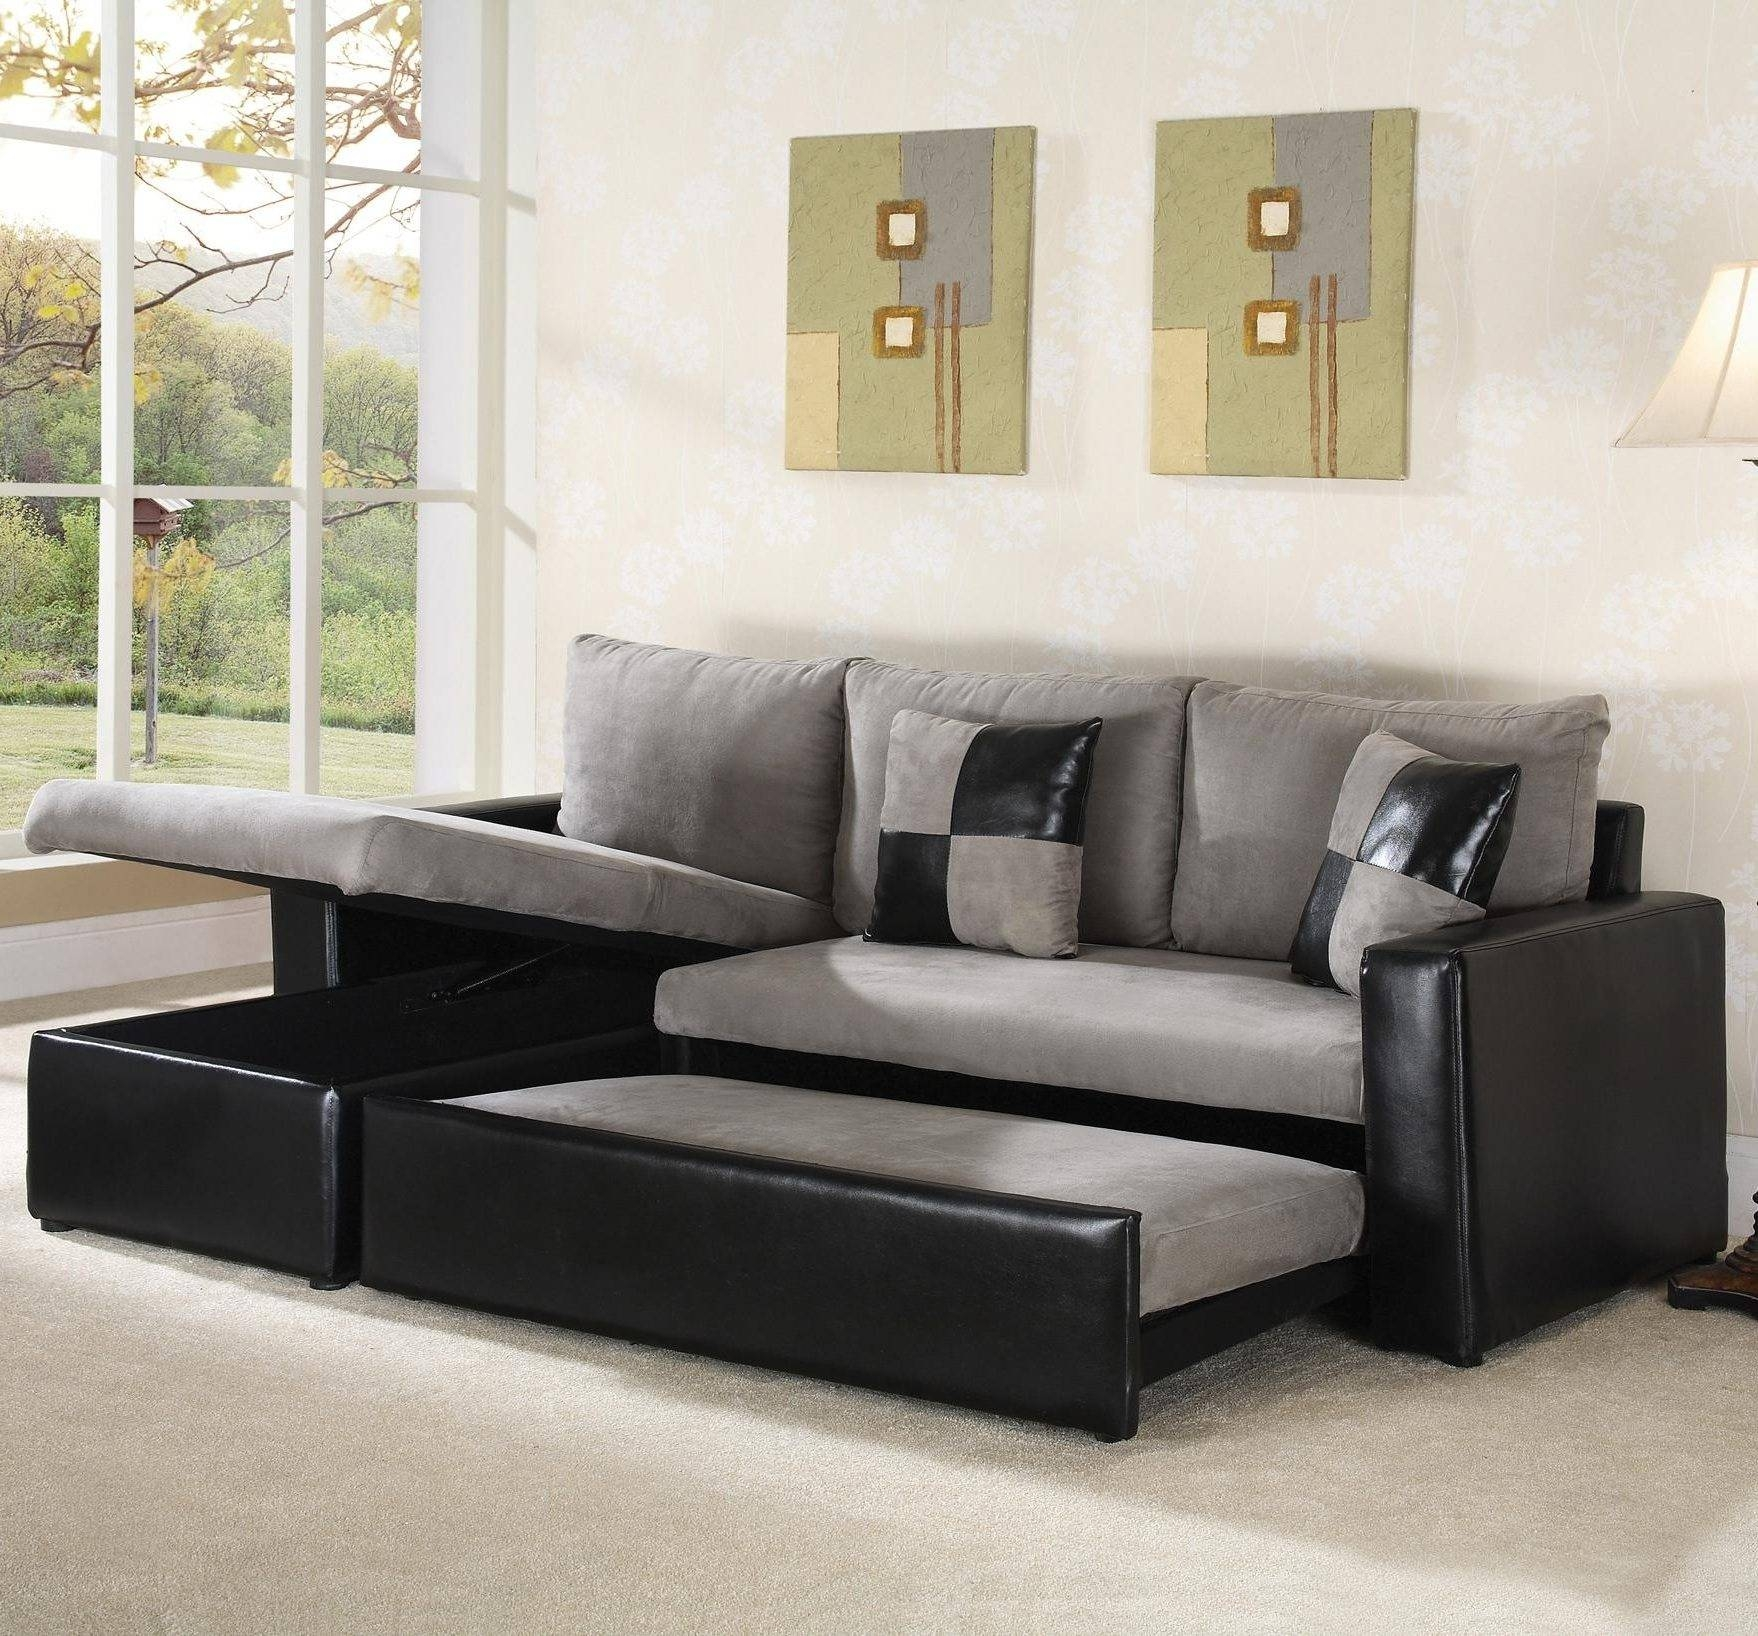 Beautiful Most Comfortable Sleeper Sofa 2017 80 With Additional In Sleeper Sofas San Diego (View 3 of 25)